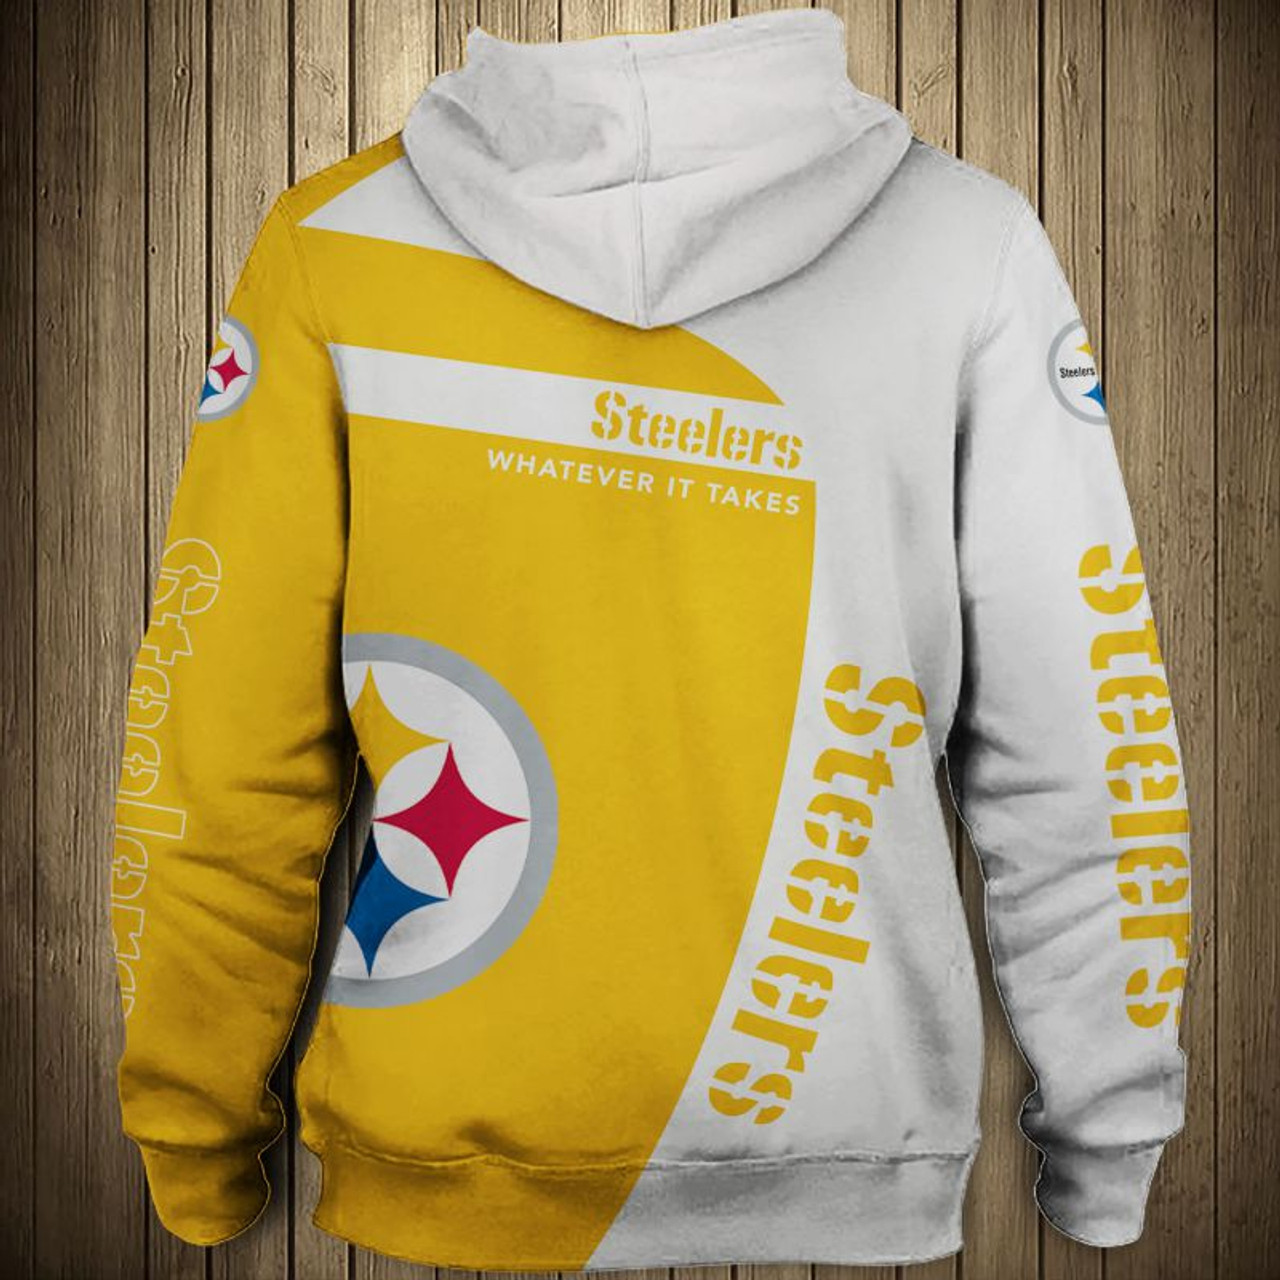 new arrivals 0dfab 1a139 **(OFFICIAL-N.F.L.PITTSBURGH-STEELERS-ZIPPERED-HOODIES/3D-CUSTOM-STEELERS-LOGOS  & OFFICIAL-STEELERS-TEAM-COLORS/NICE-3D-DETAILED-GRAPHIC-PRINTED-DOUBL...